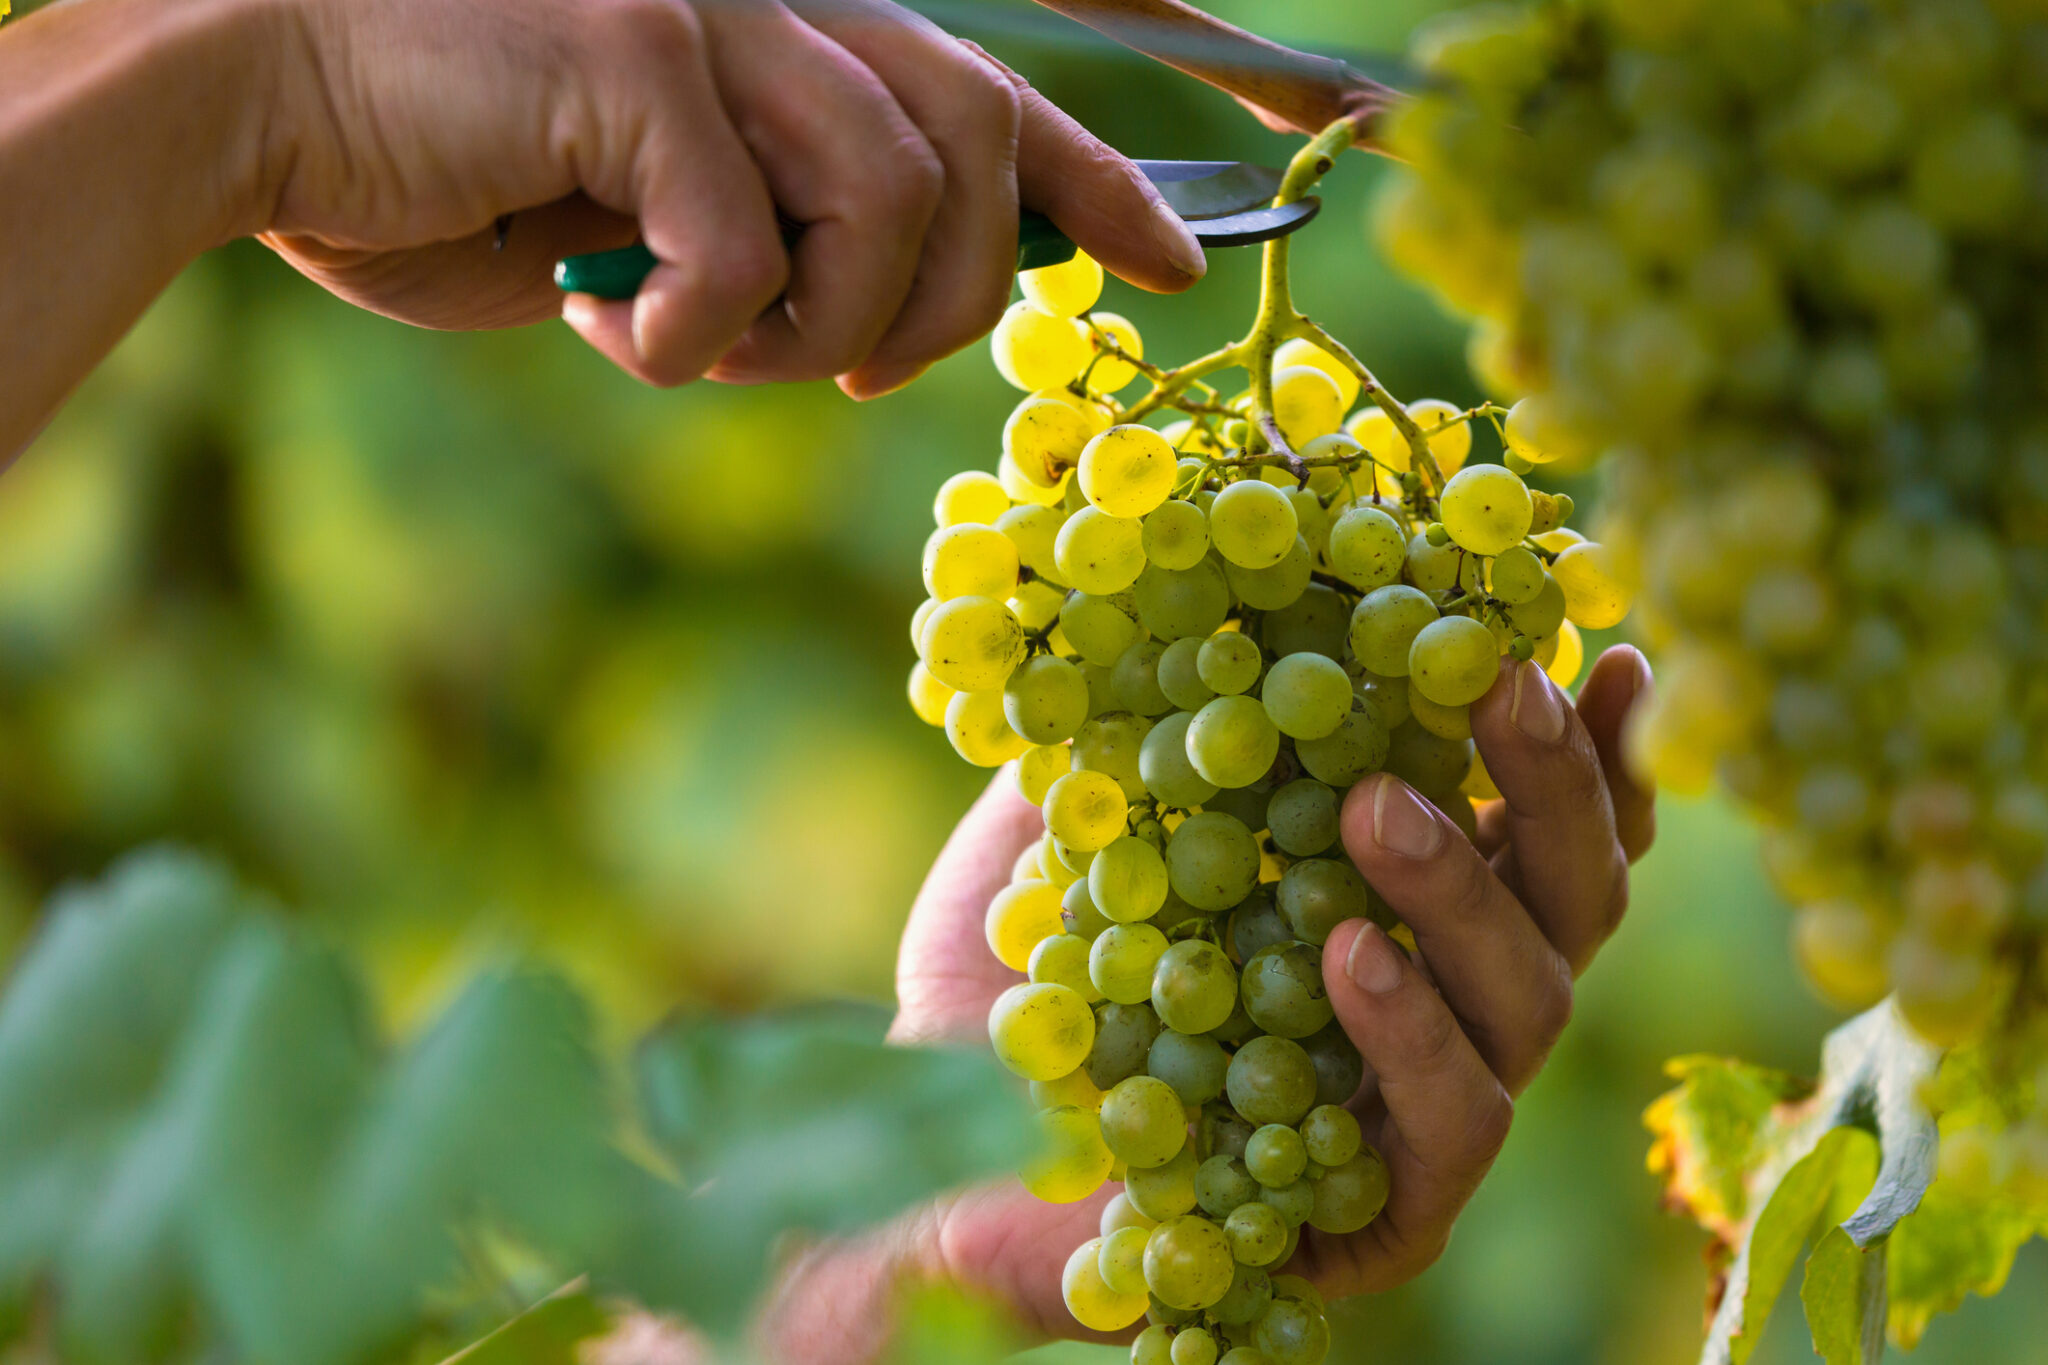 EU announces 'exceptional' support measures for wine sector